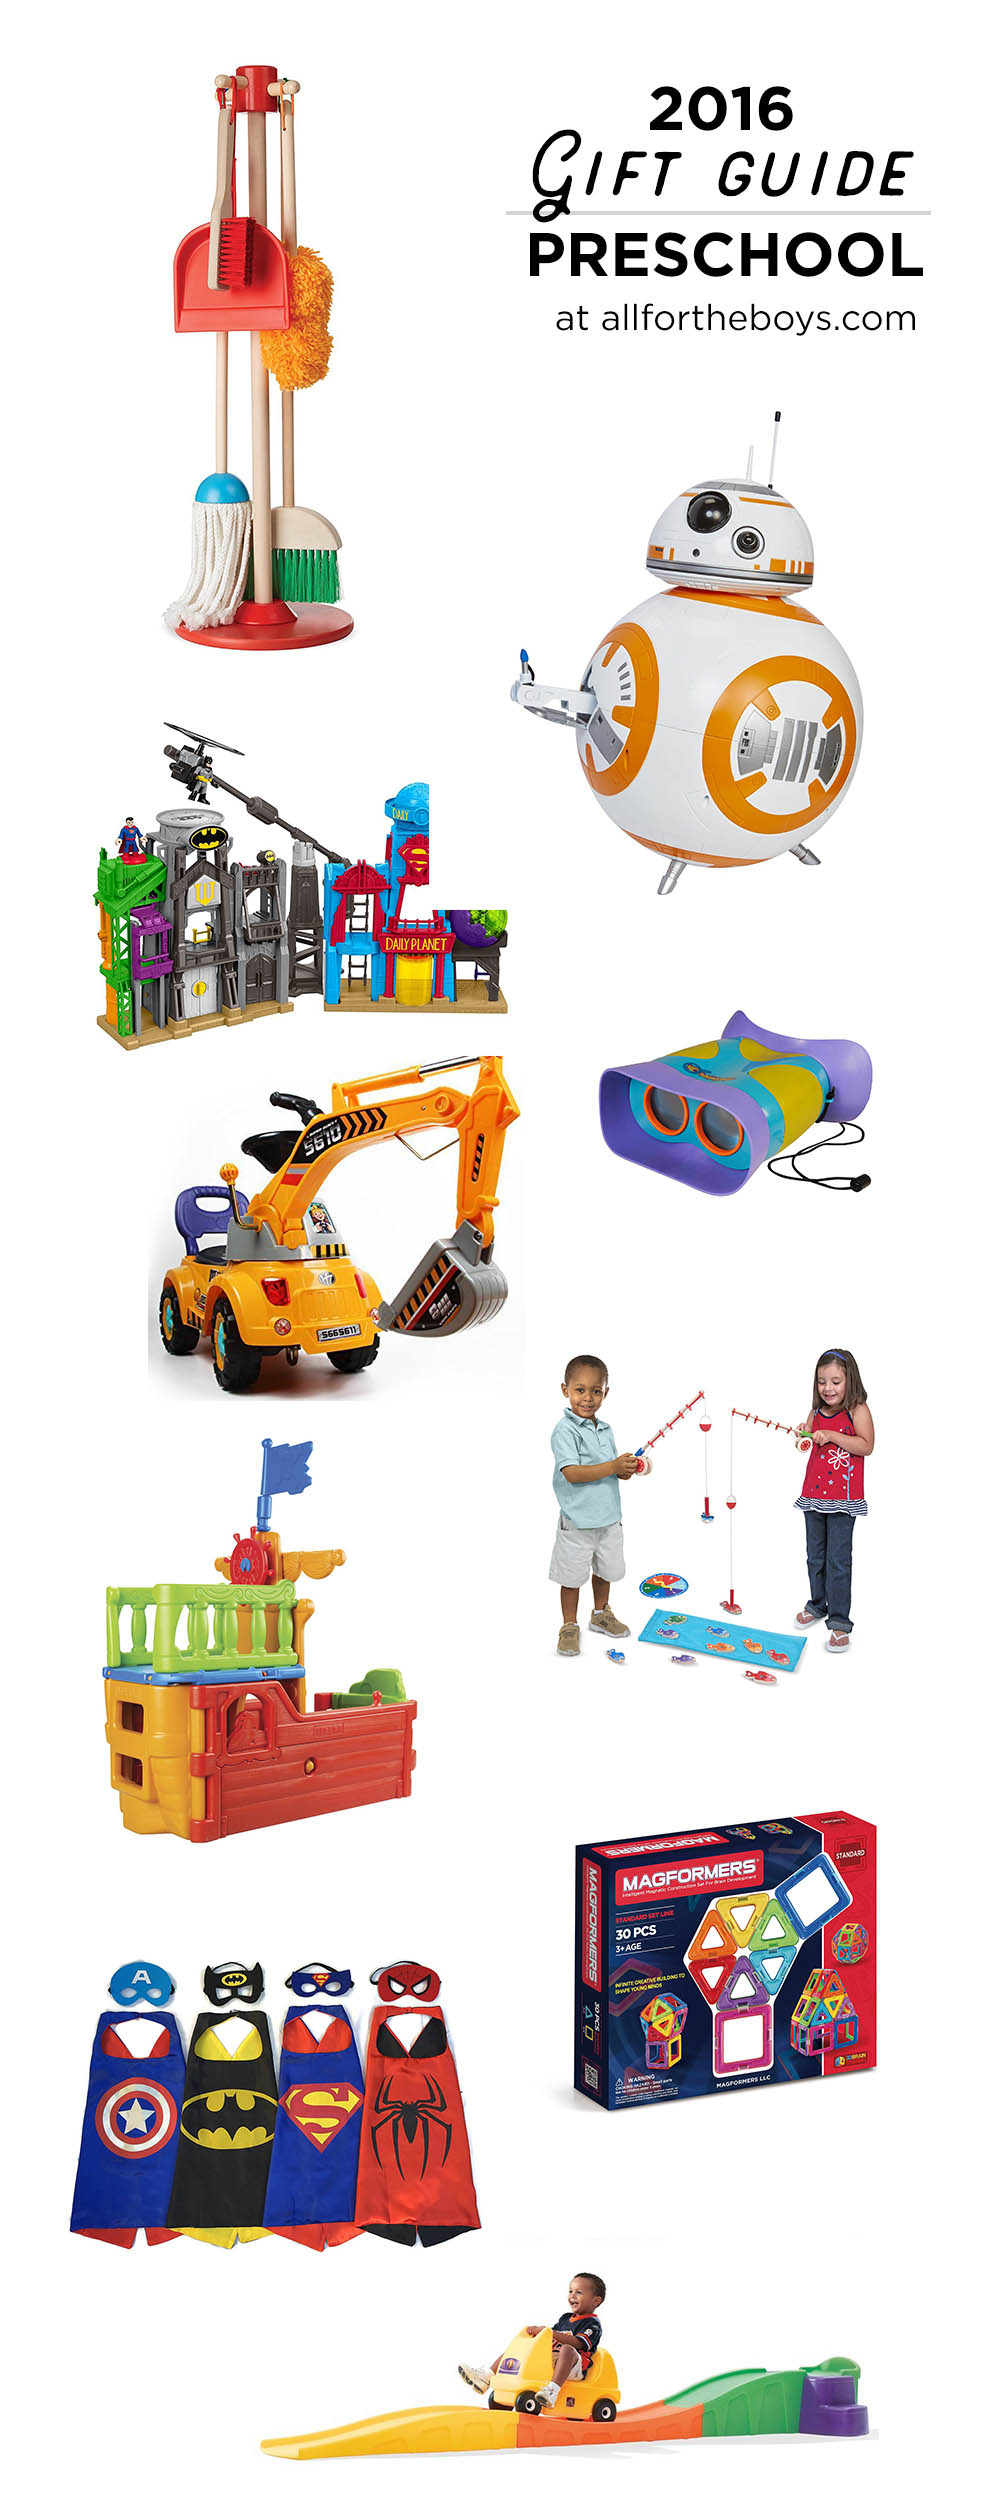 2016 Gift Guide for preschoolers - great gift ideas for toddlers or preschool aged kids